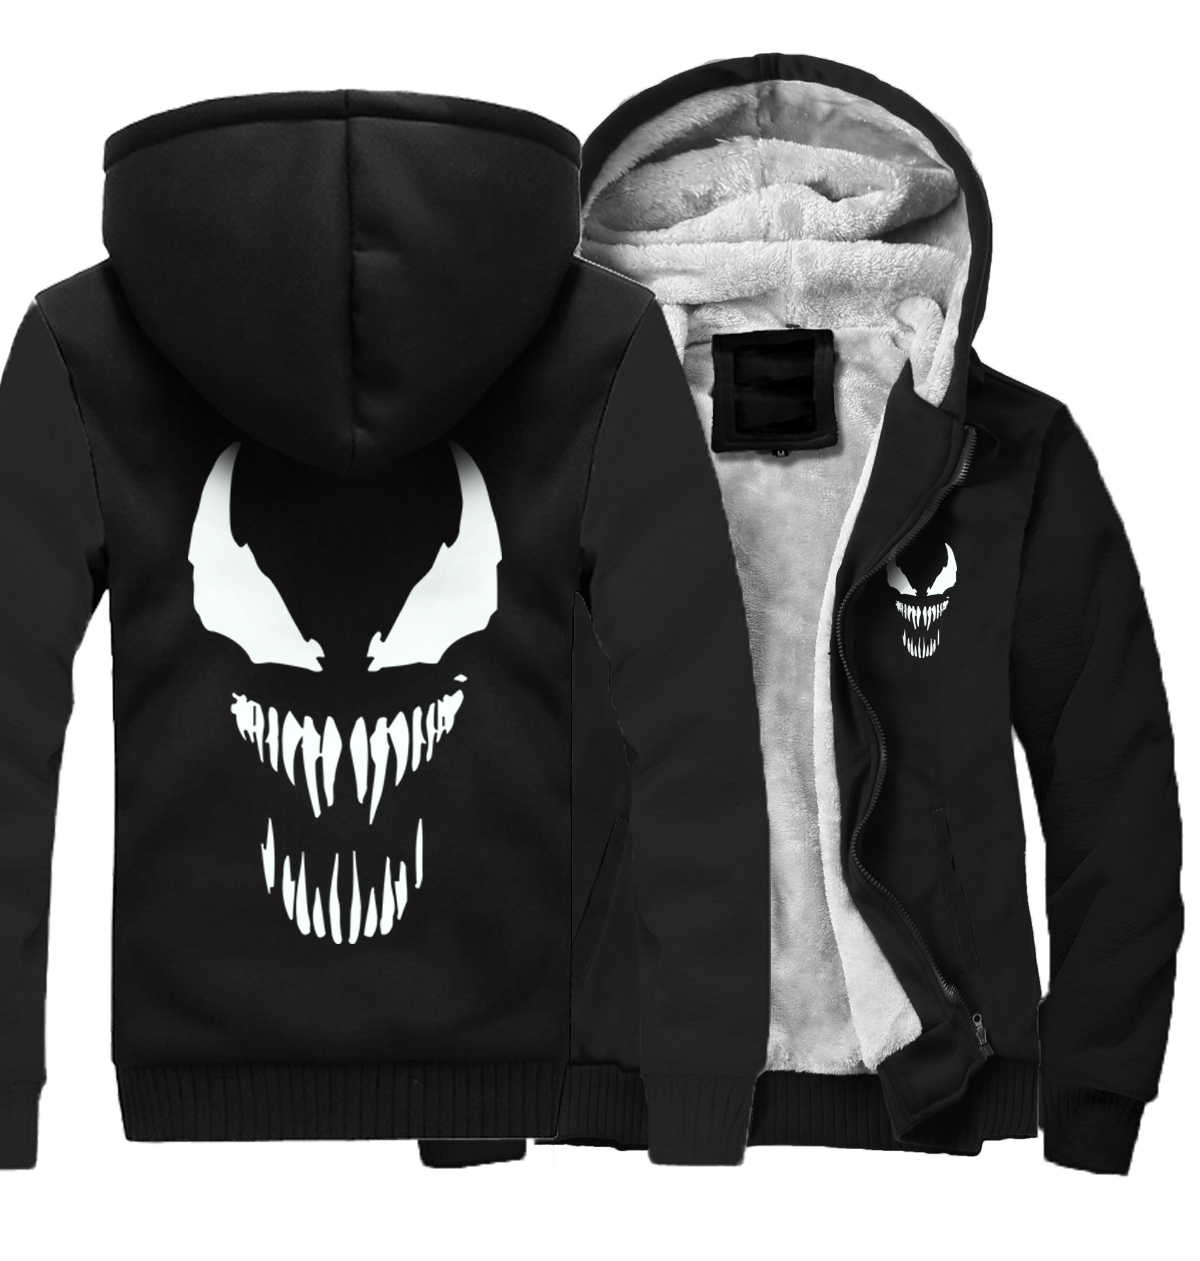 Hot Sale Men's Thick Hoodie 2018 Winter Fleece Jacket Man Funny Streetwear Sweatshirts Coats Male Solid Color Hip Hop Venom Tops